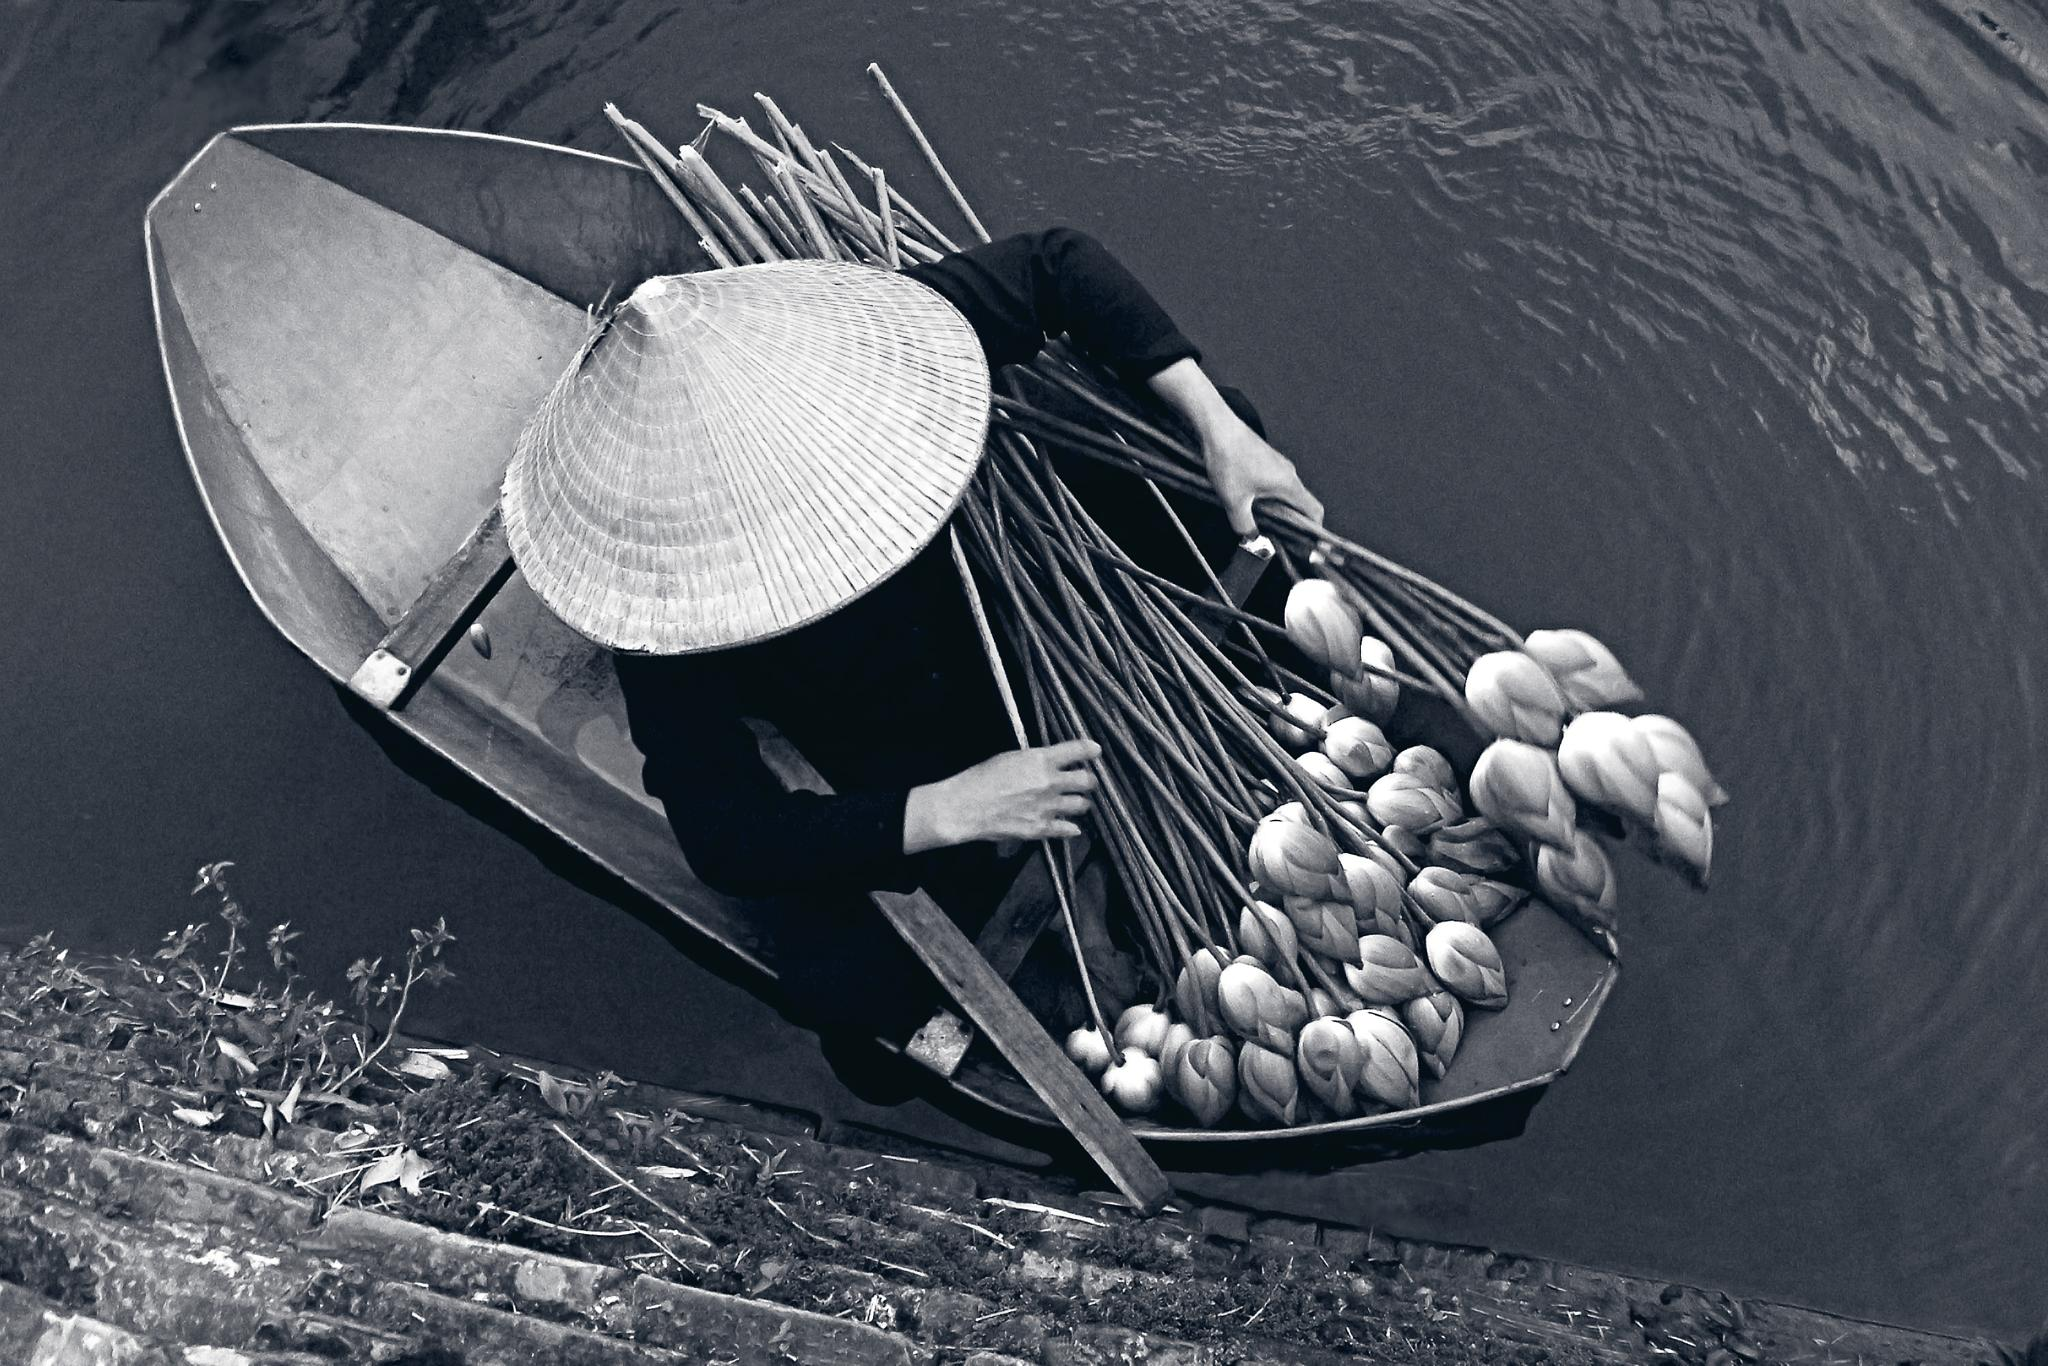 lotus boat by Do Thanh - NgoNgo